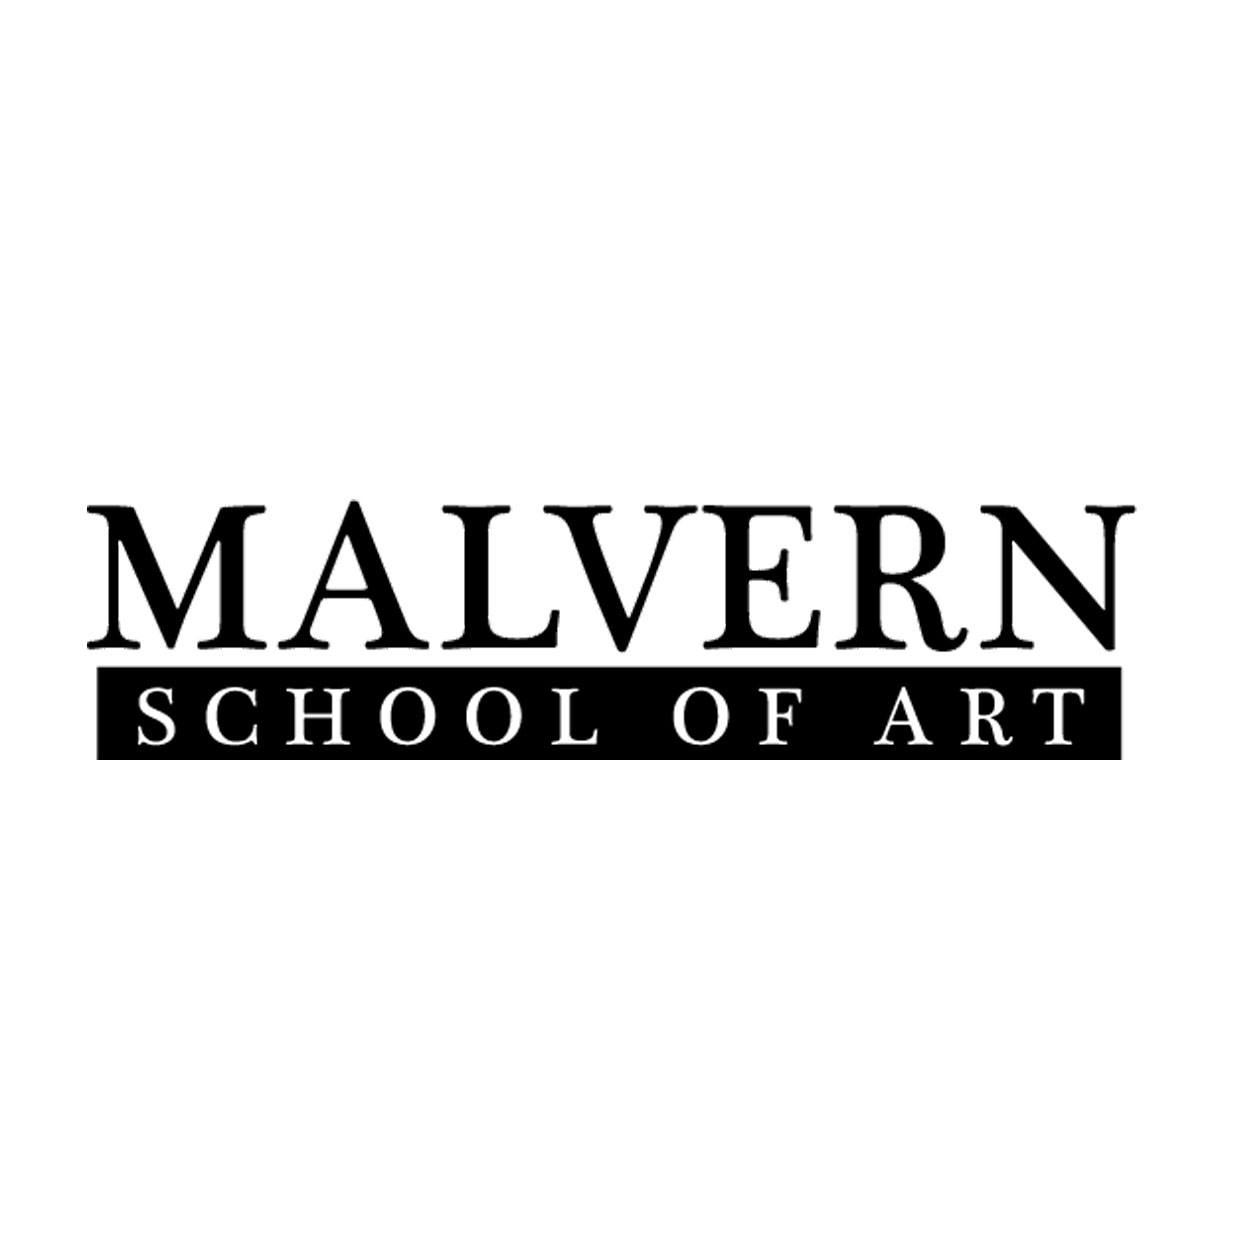 Malvern School of Art